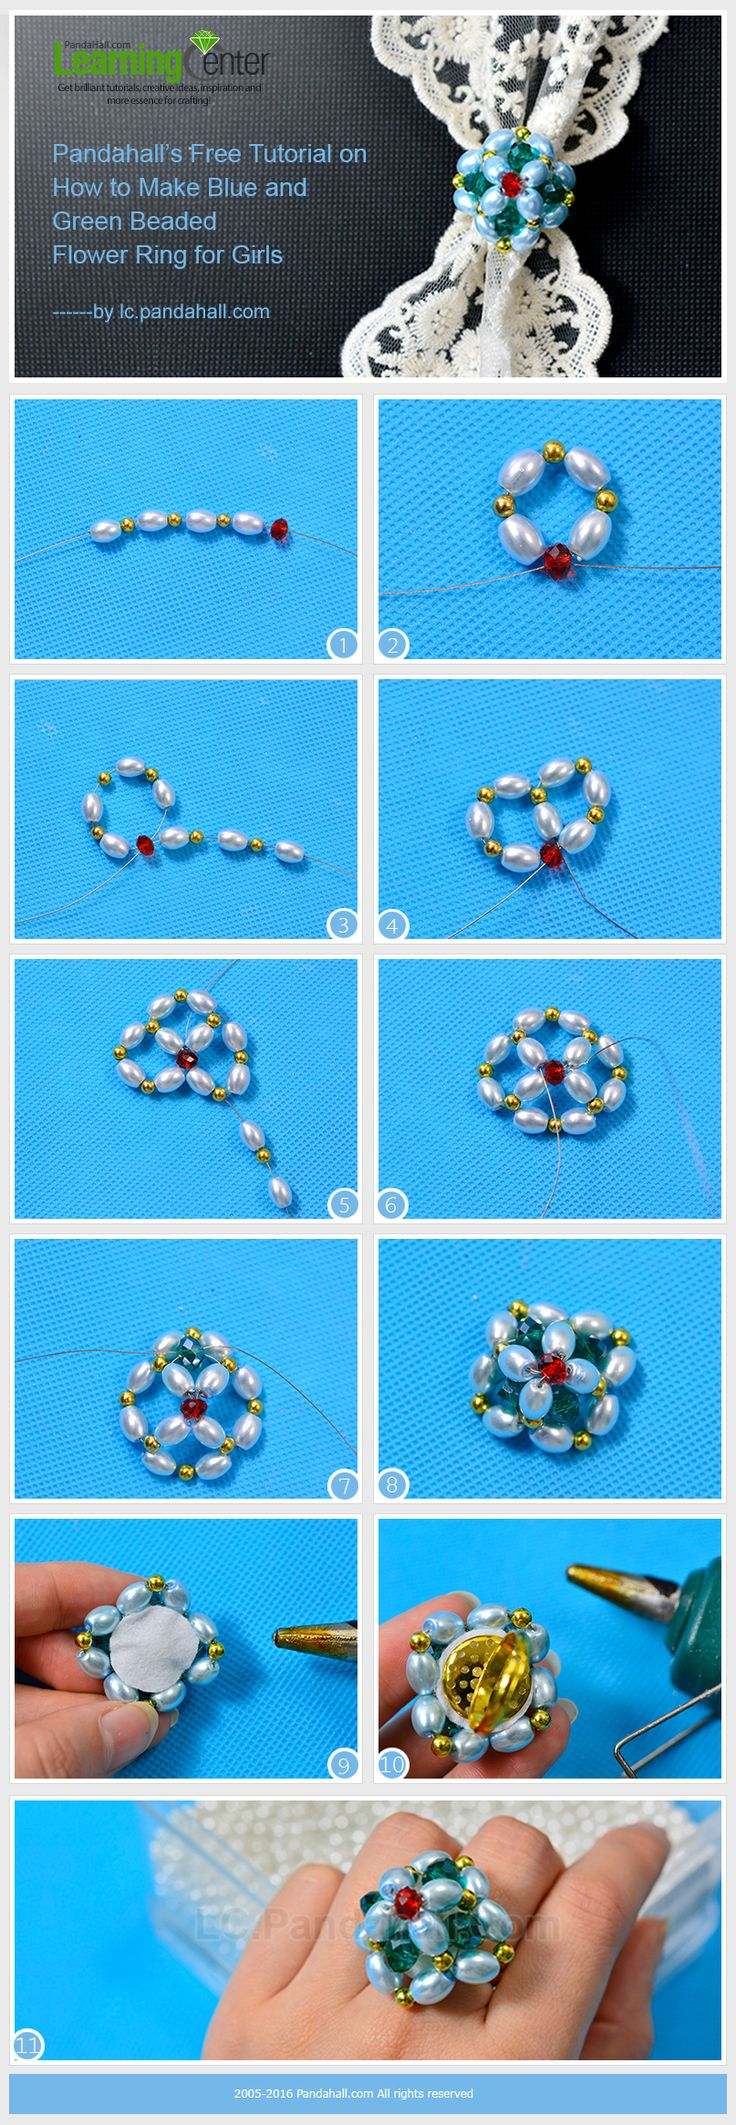 Free Tutorial on How to Make Blue and Green Beaded Flower Ring for Girls from LC.Pandahall.com    #pandahall